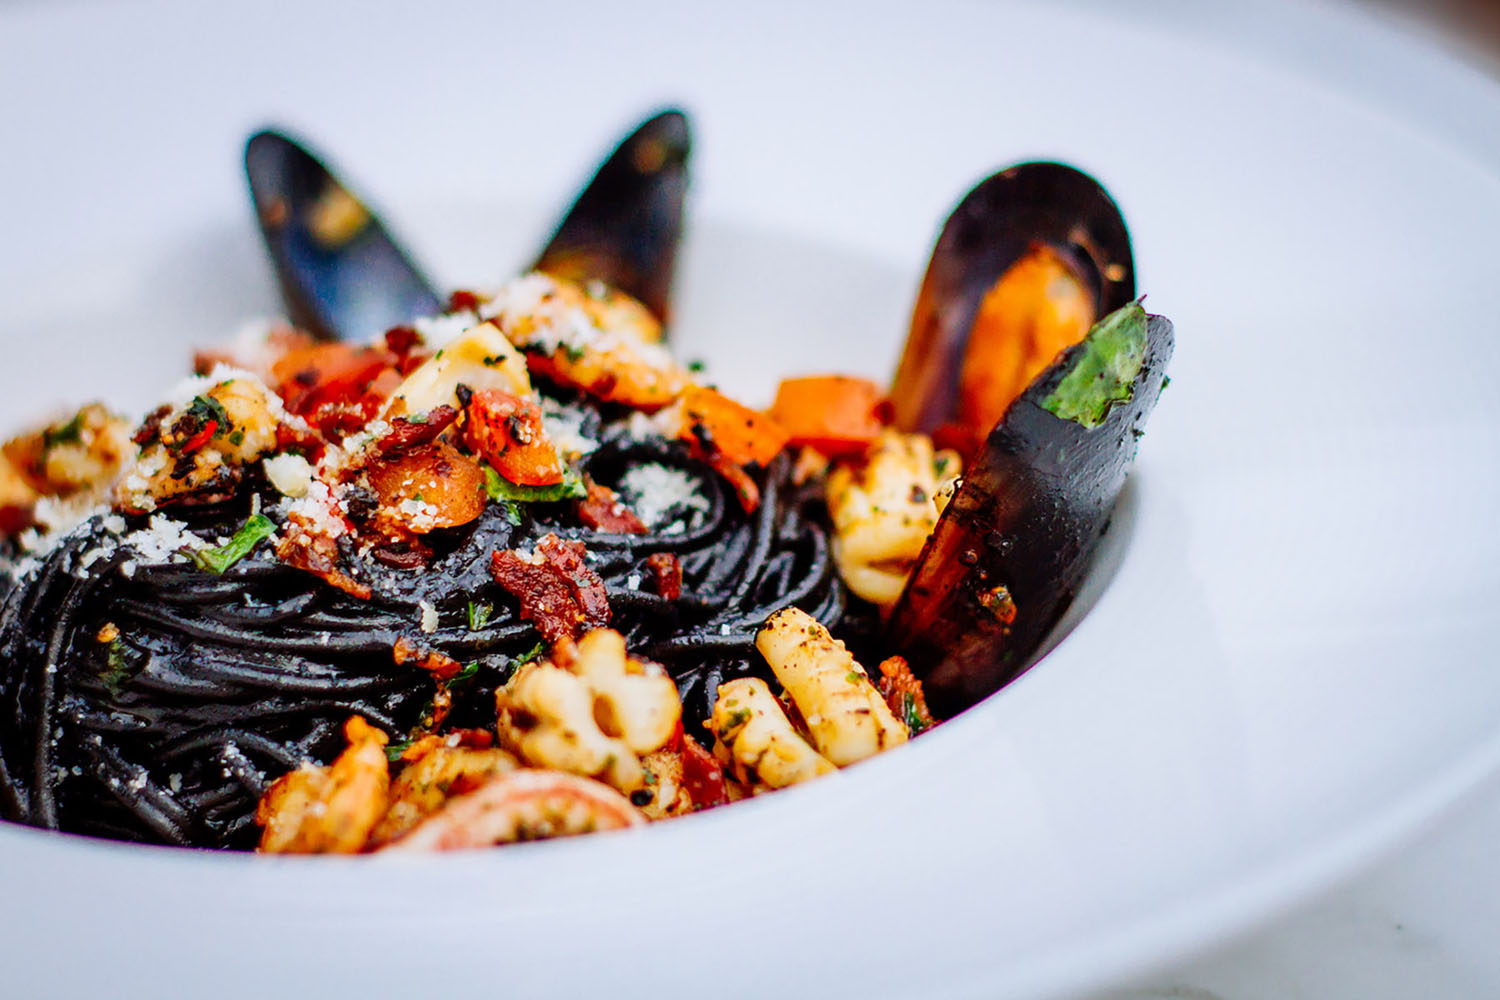 Squid ink pasta with seafood.